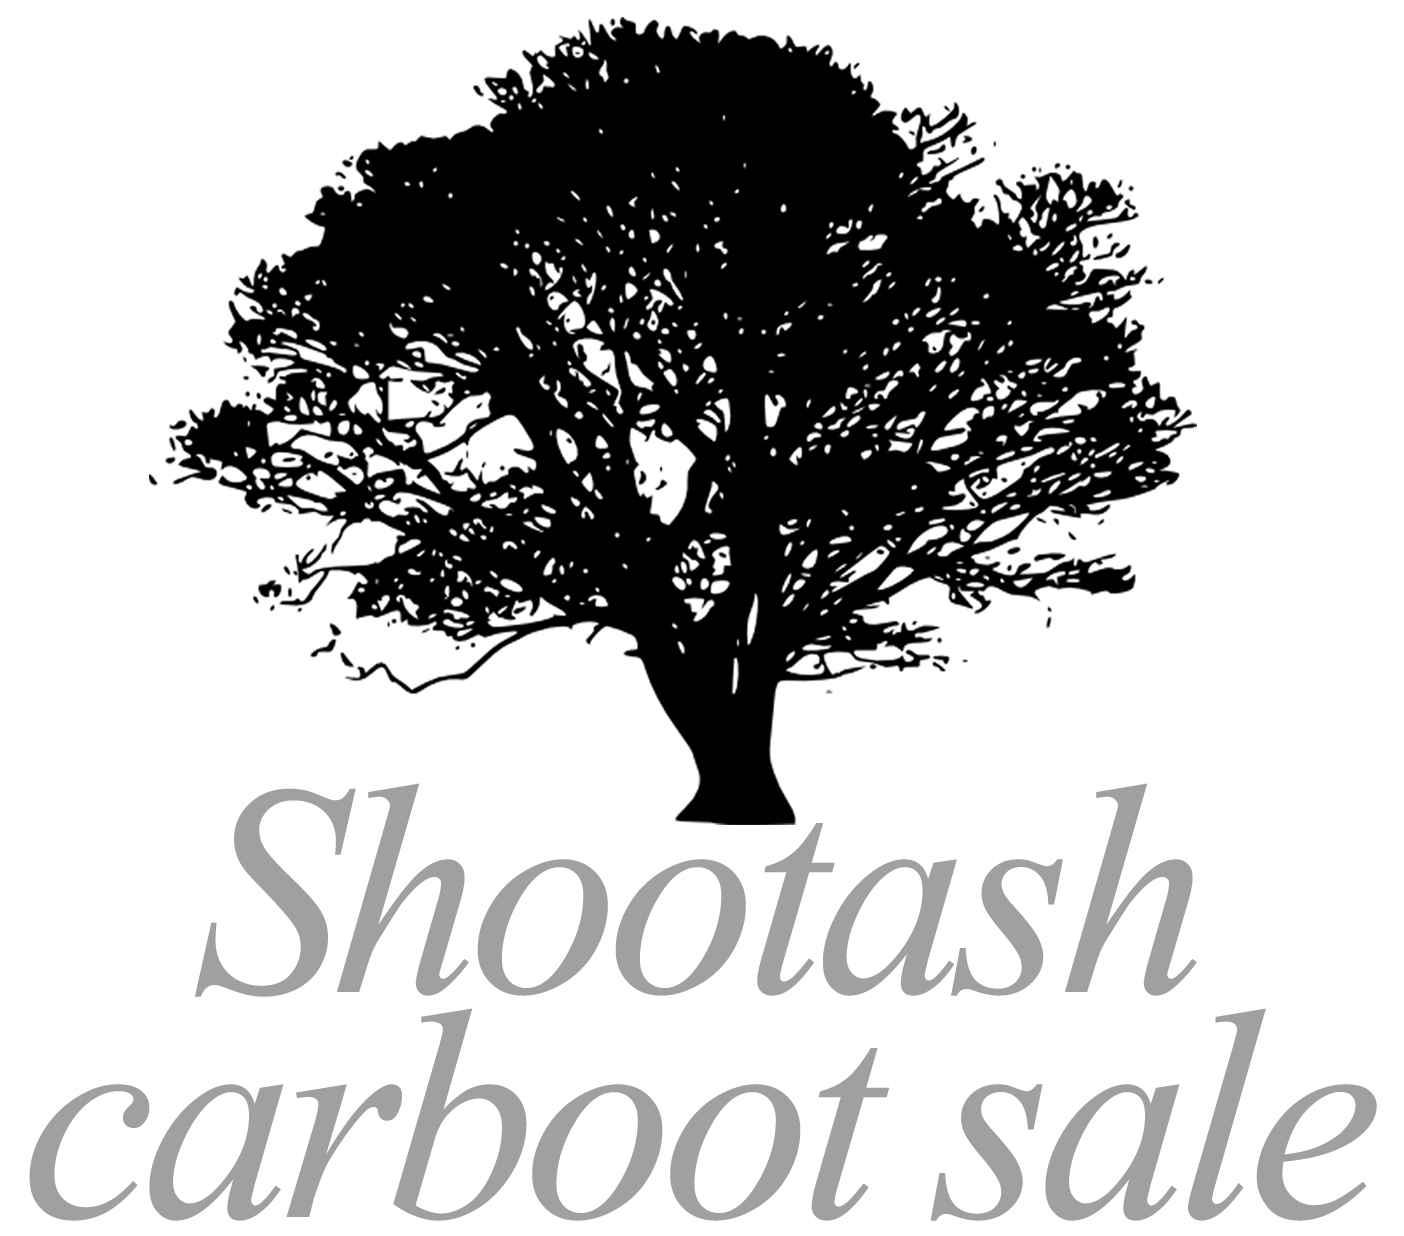 Shootash Carboot